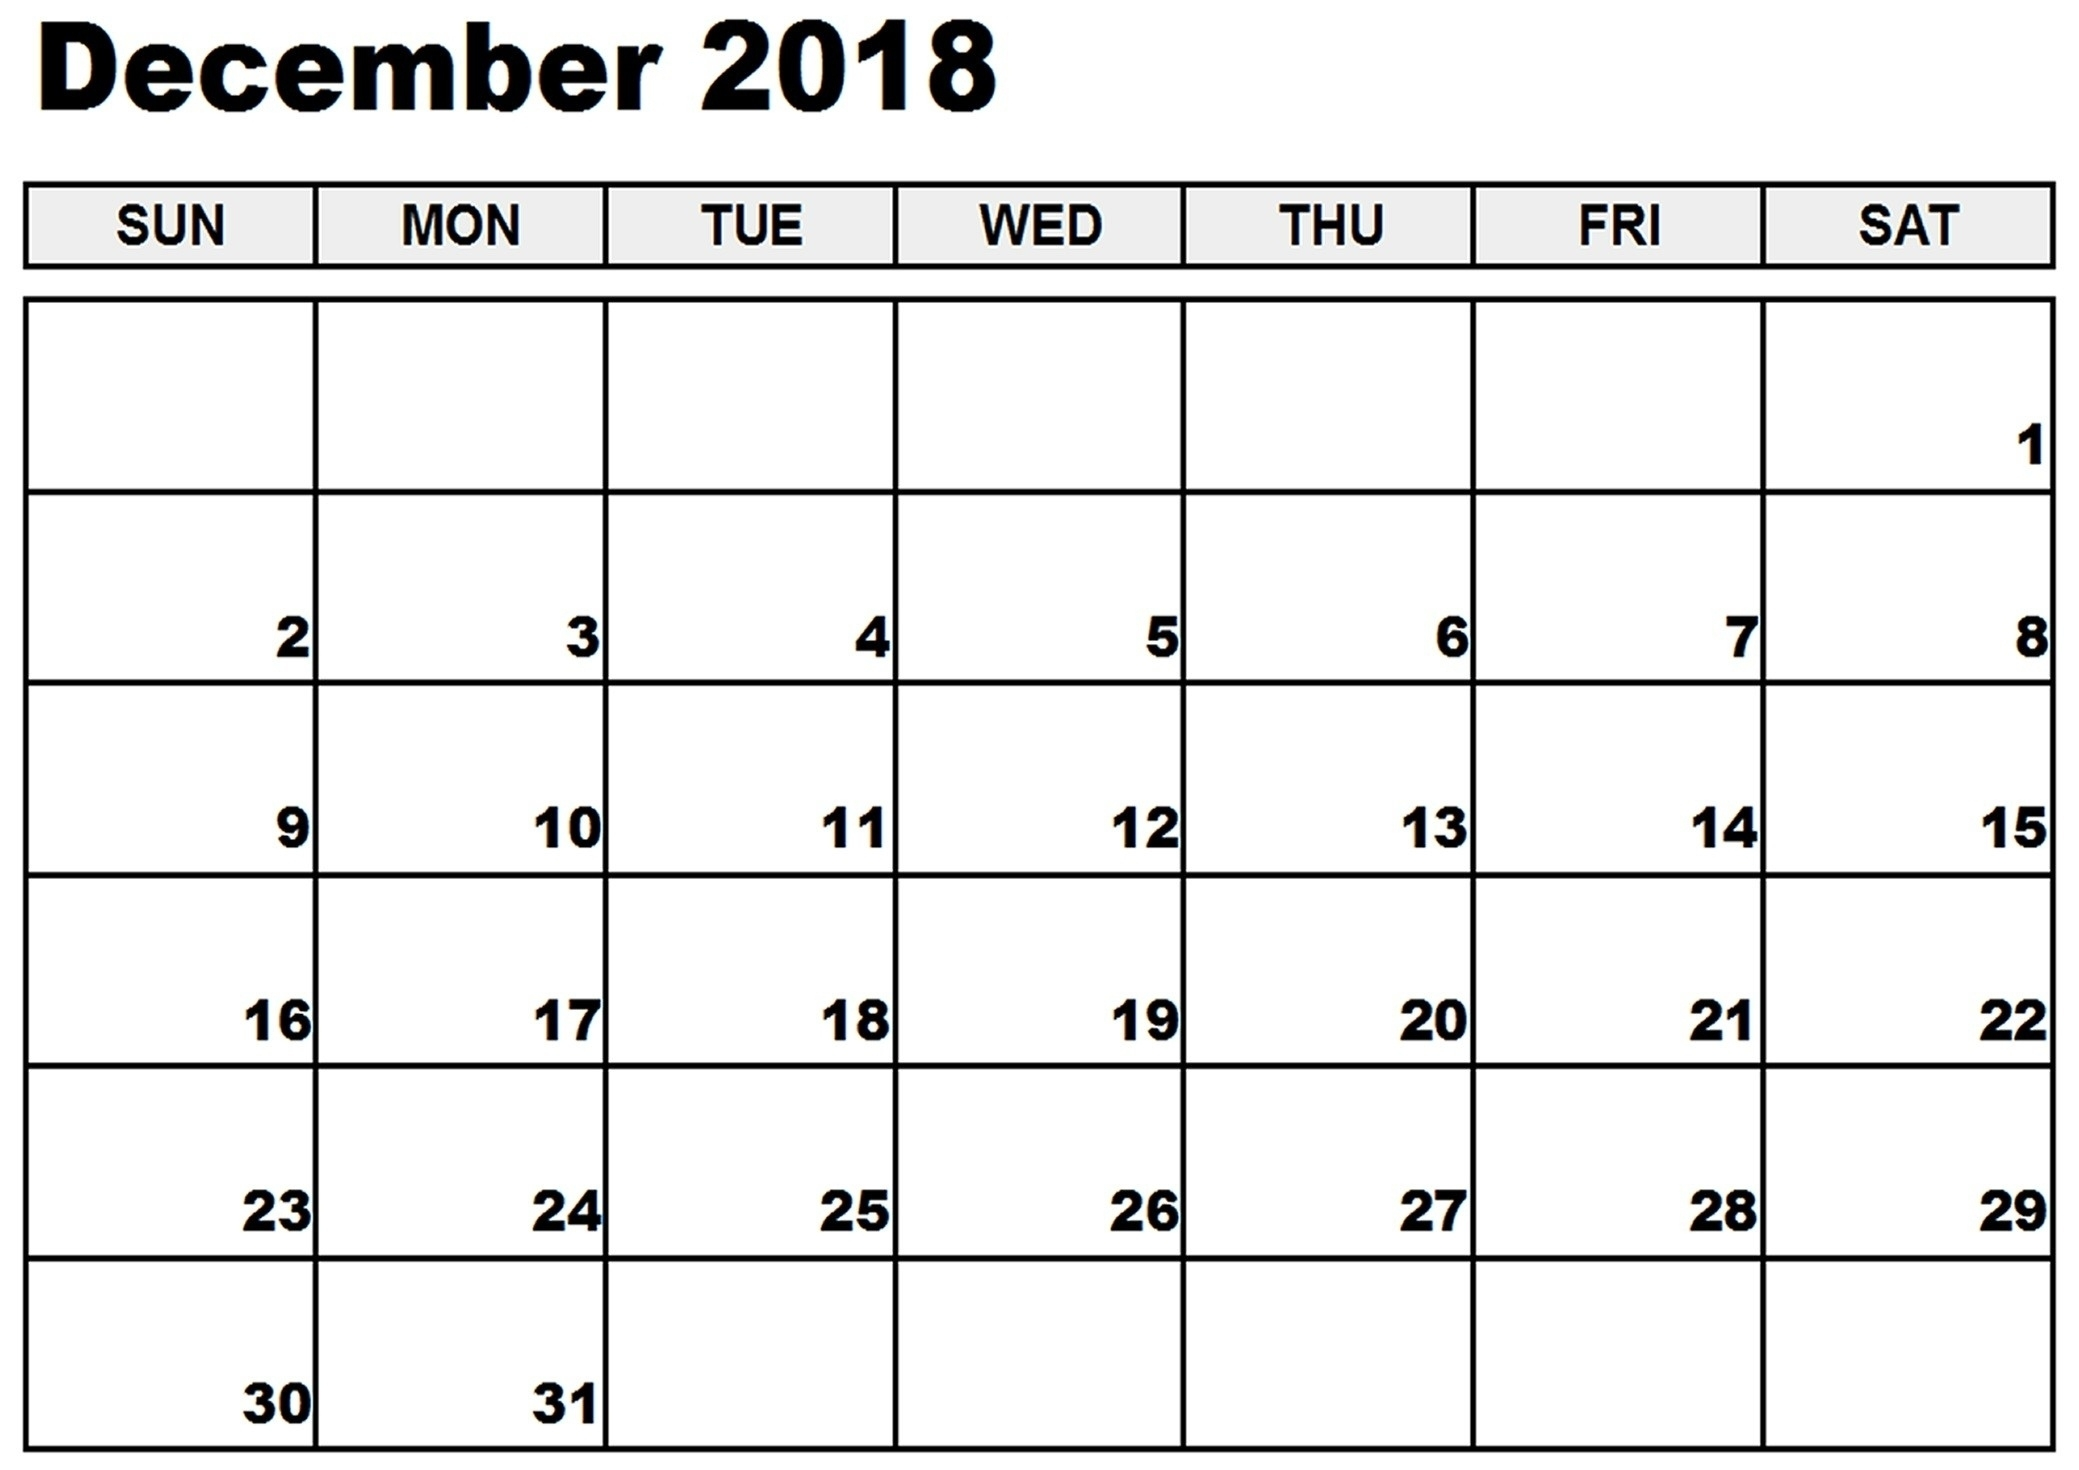 December 2018 Calendar Holidays | Kostilka Calendar Holidays In December